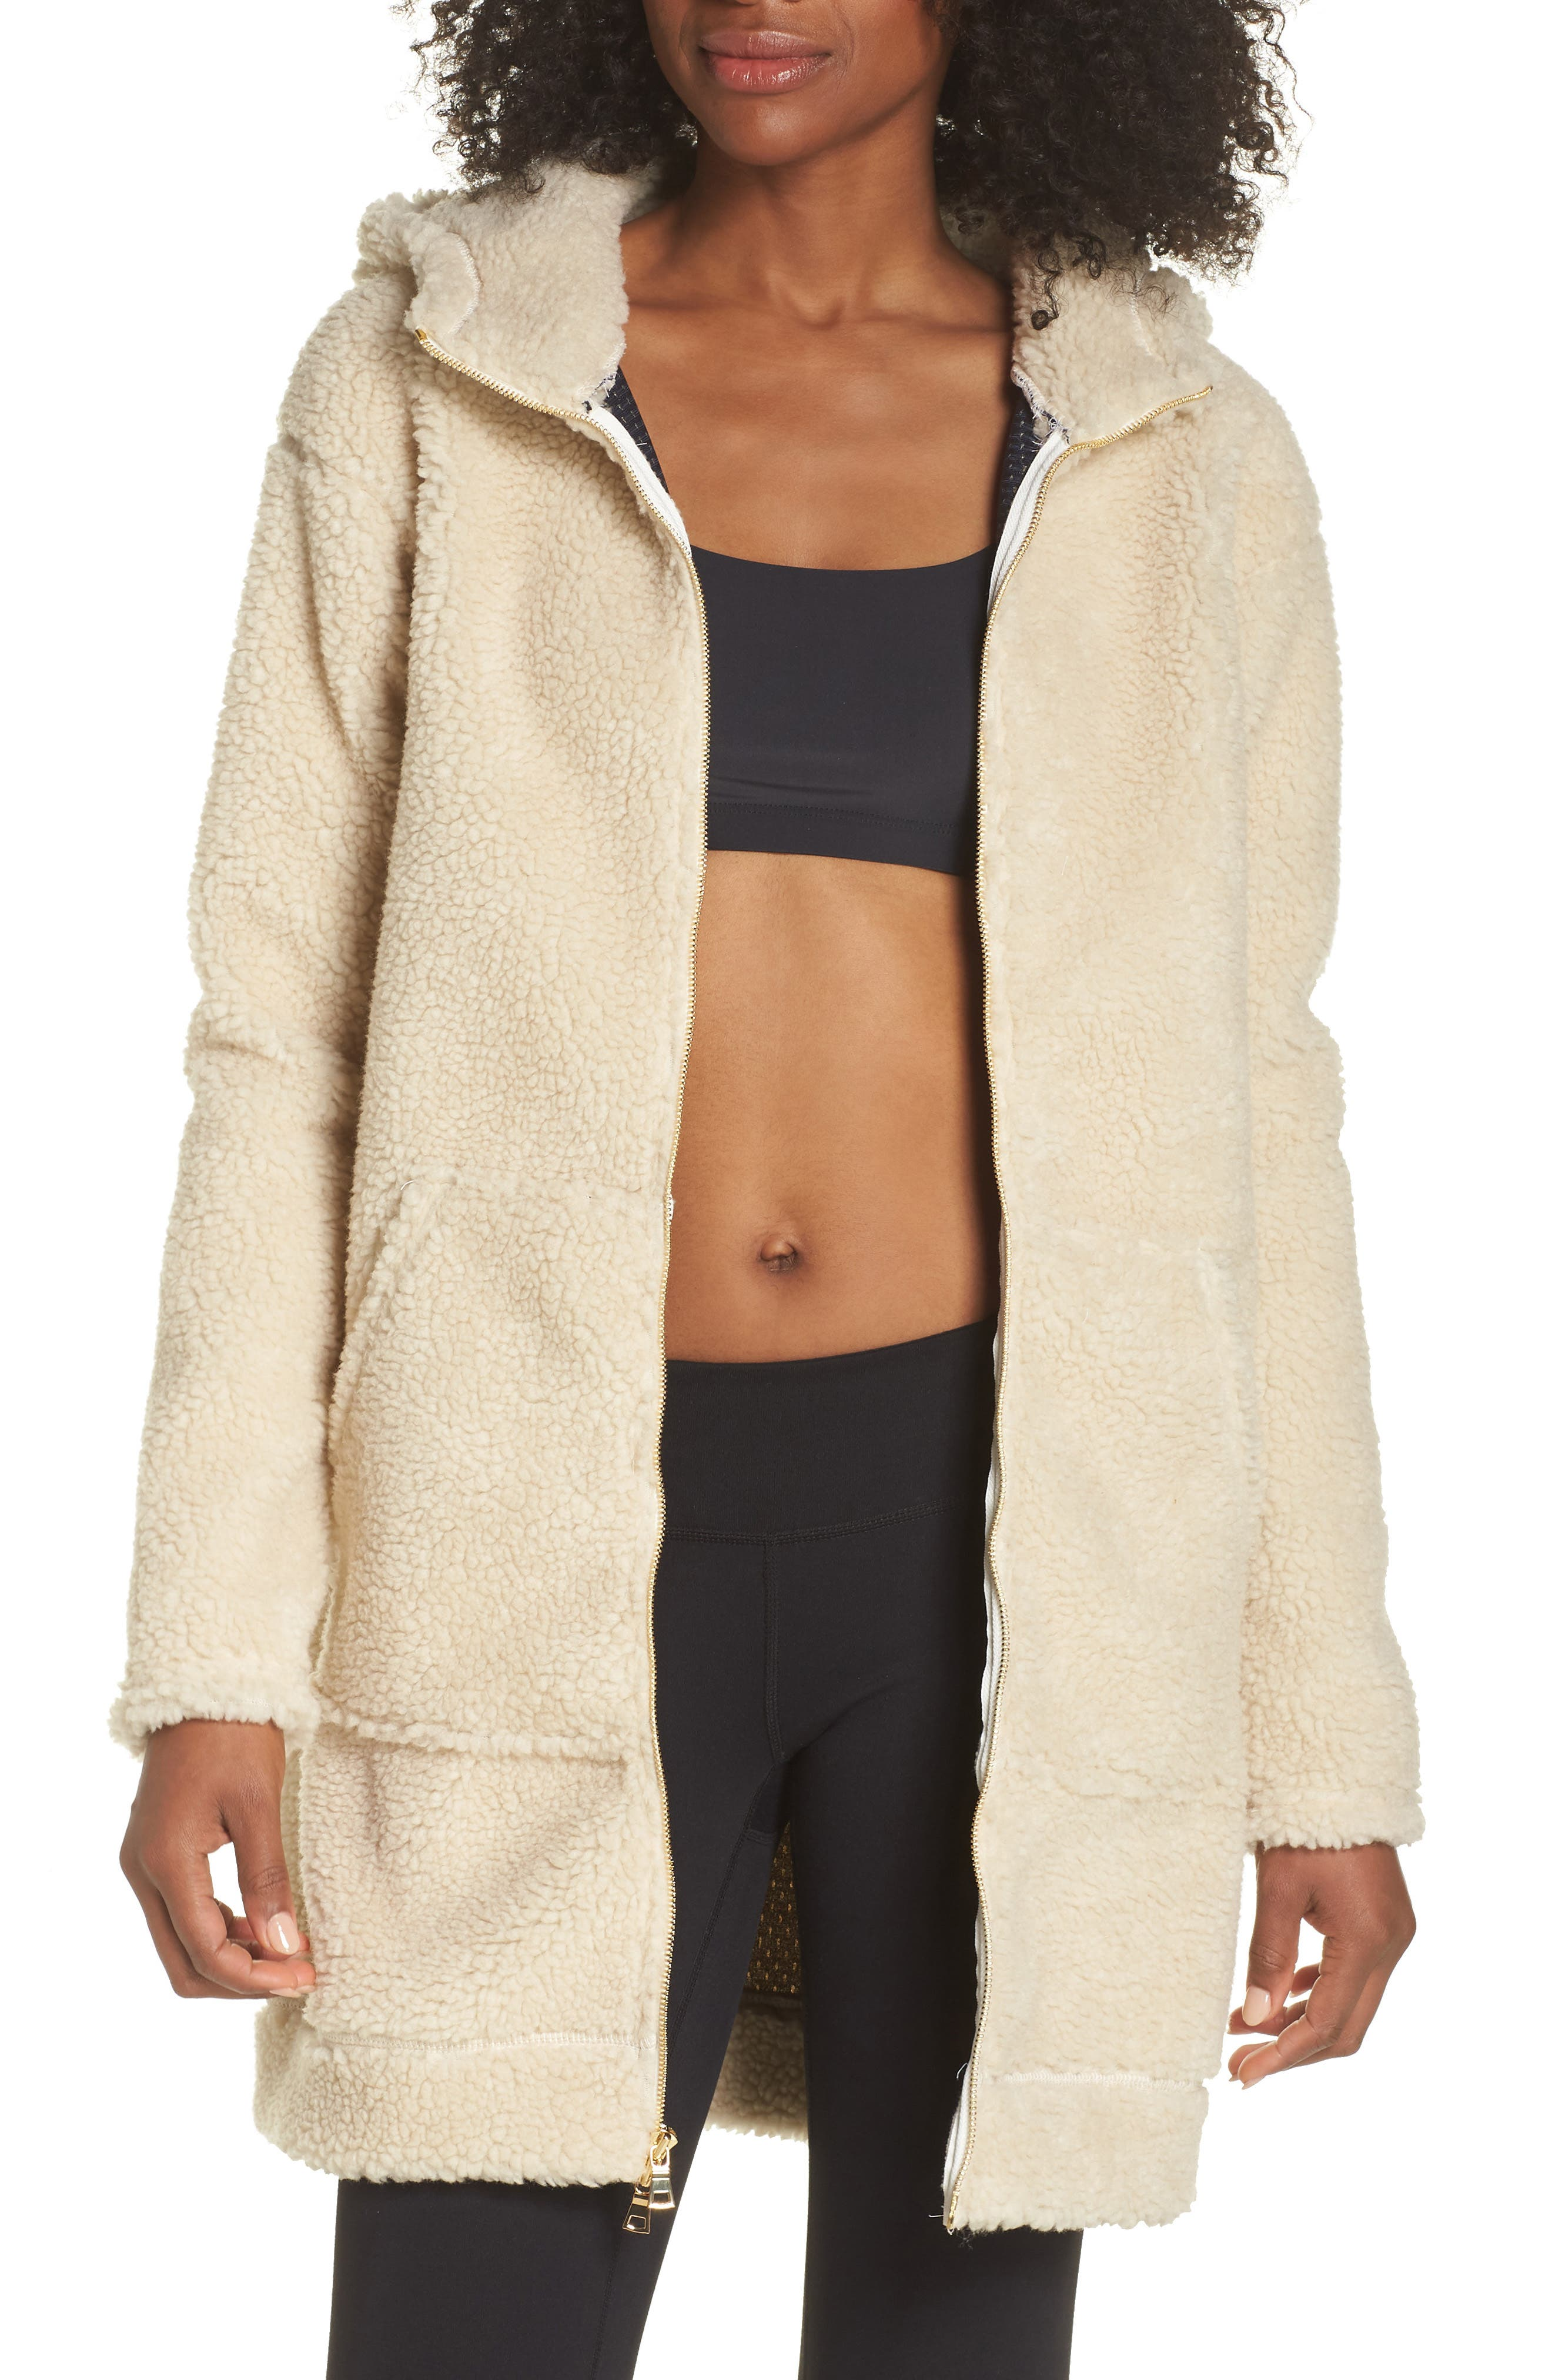 Varley Brea Fleece Jacket